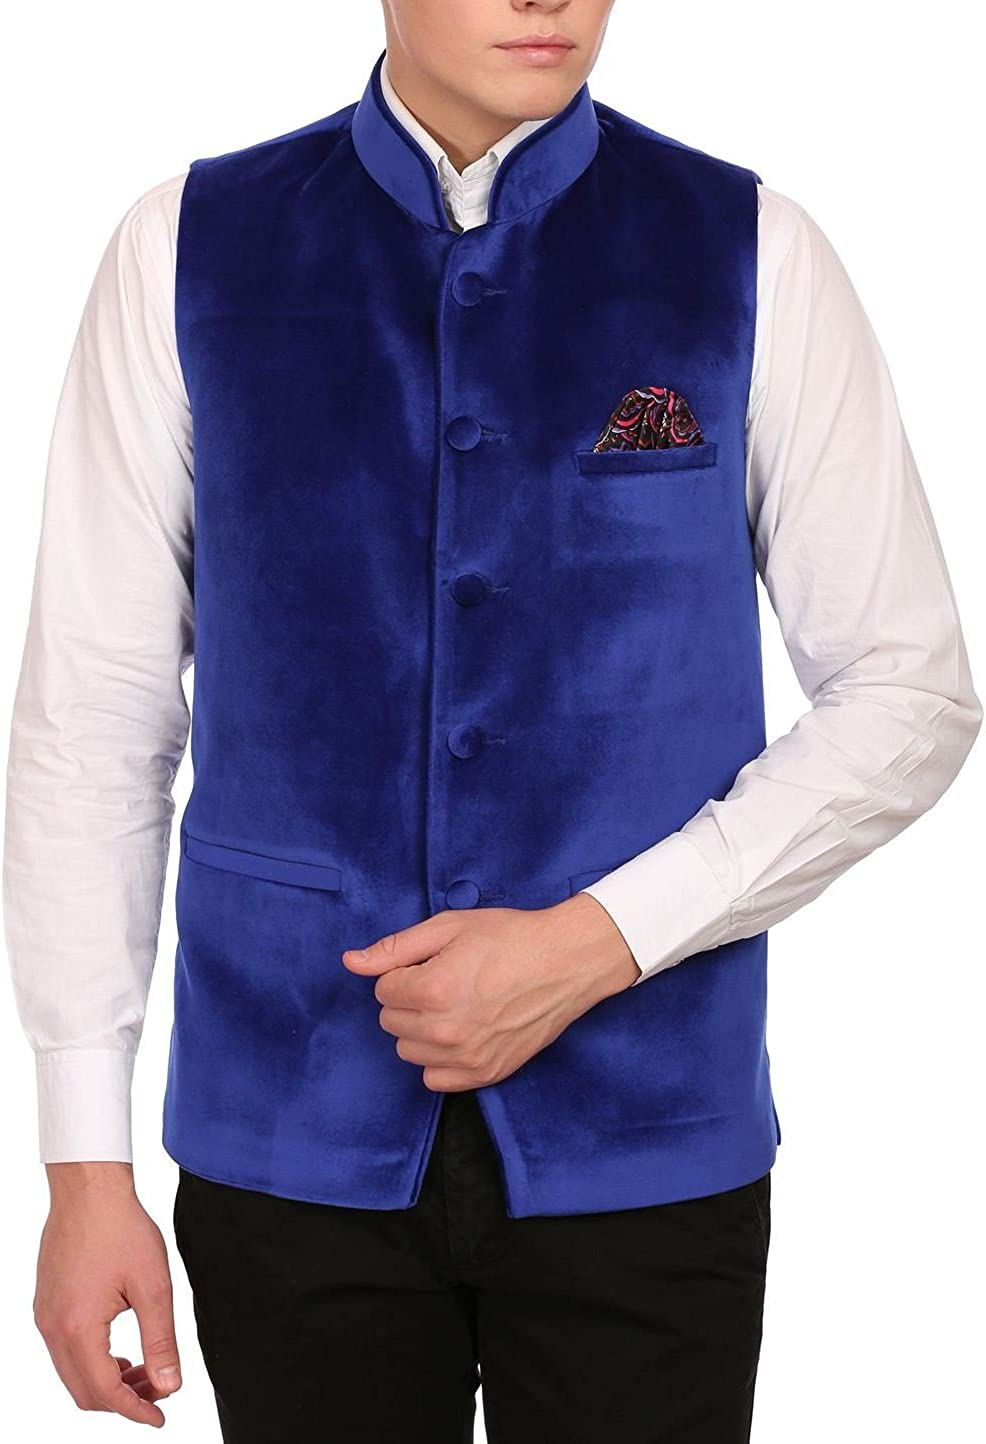 WINTAGE Men's Velvet Grandad Collar Party Nehru Jacket Vest Waistcoat - 7 Colors